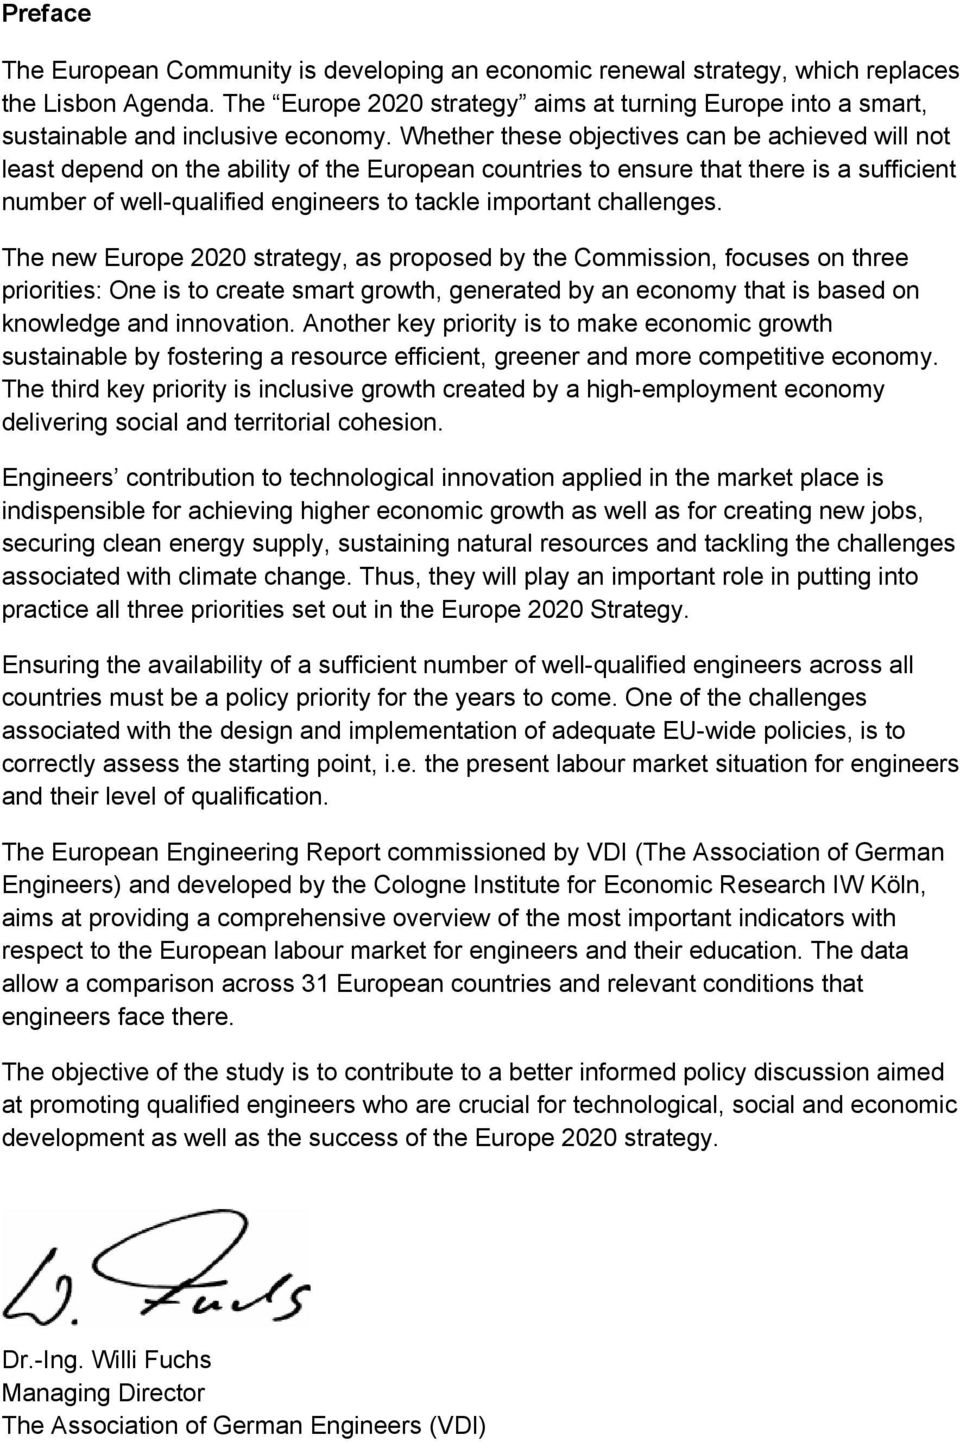 Whether these objectives can be achieved will not least depend on the ability of the European countries to ensure that there is a sufficient number of well-qualified engineers to tackle important